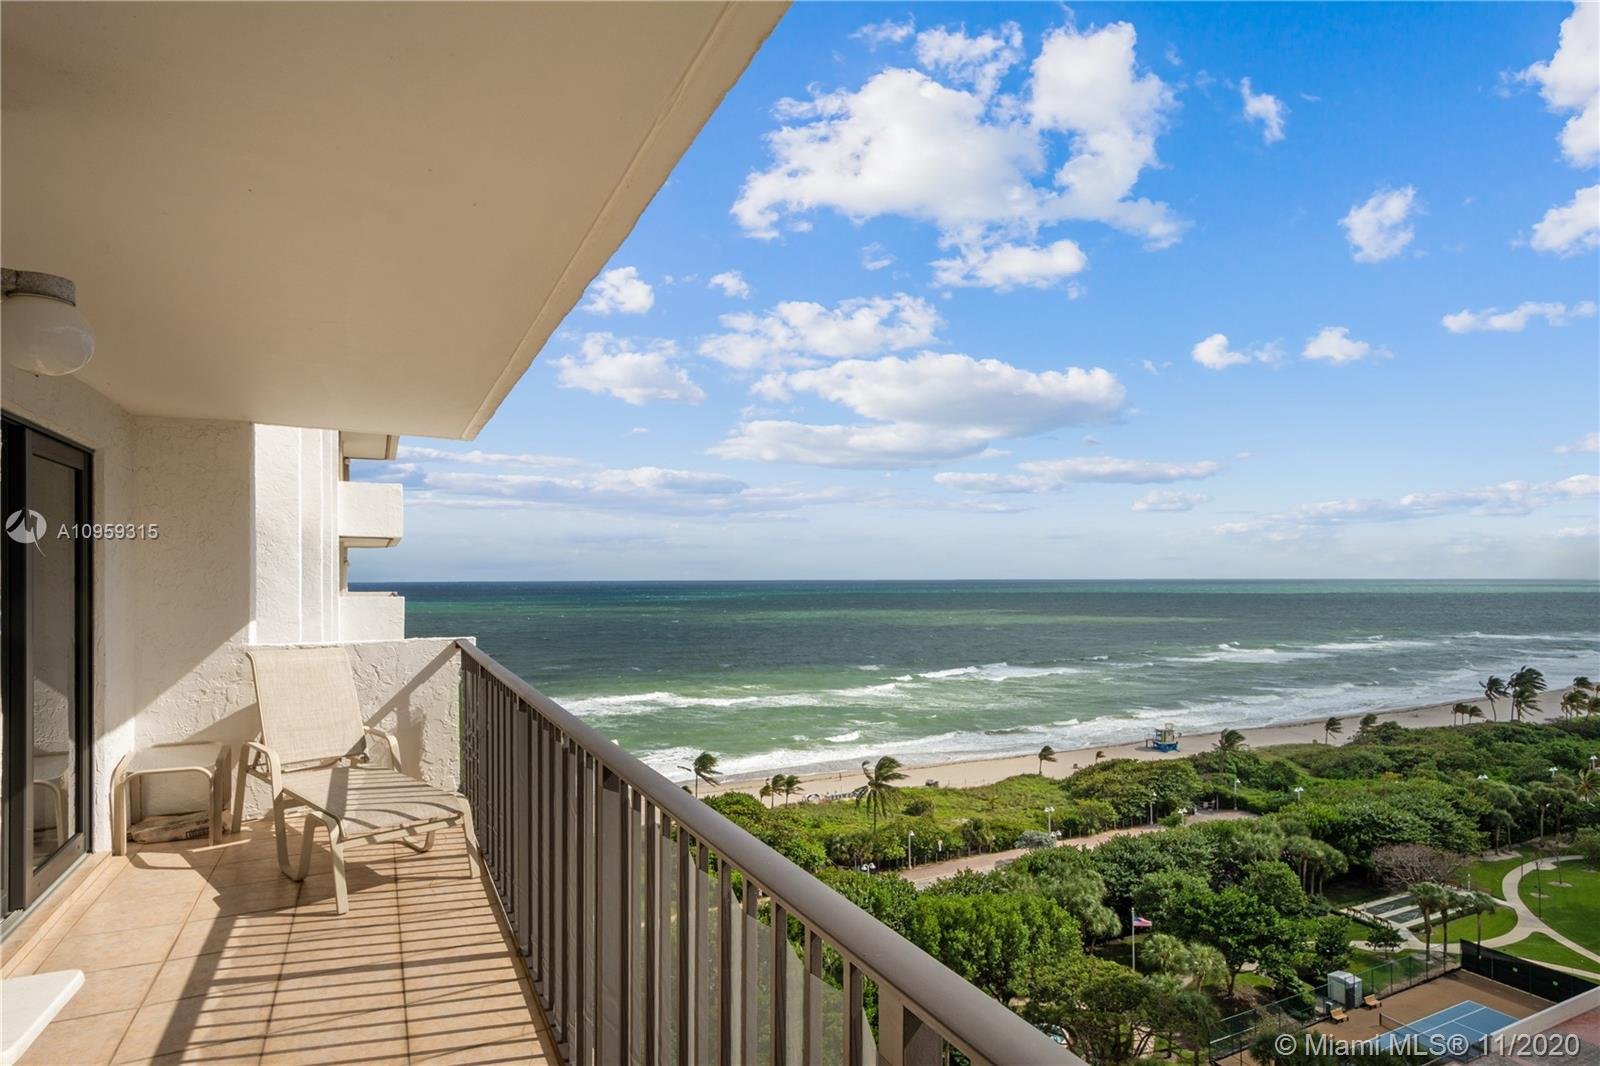 INCREDIBLE OCEAN, INTRACOASTAL, AND POOL VIEWS FROM THE 16TH FLOOR! NEEDS UPDATING AND IS PRICED RIG